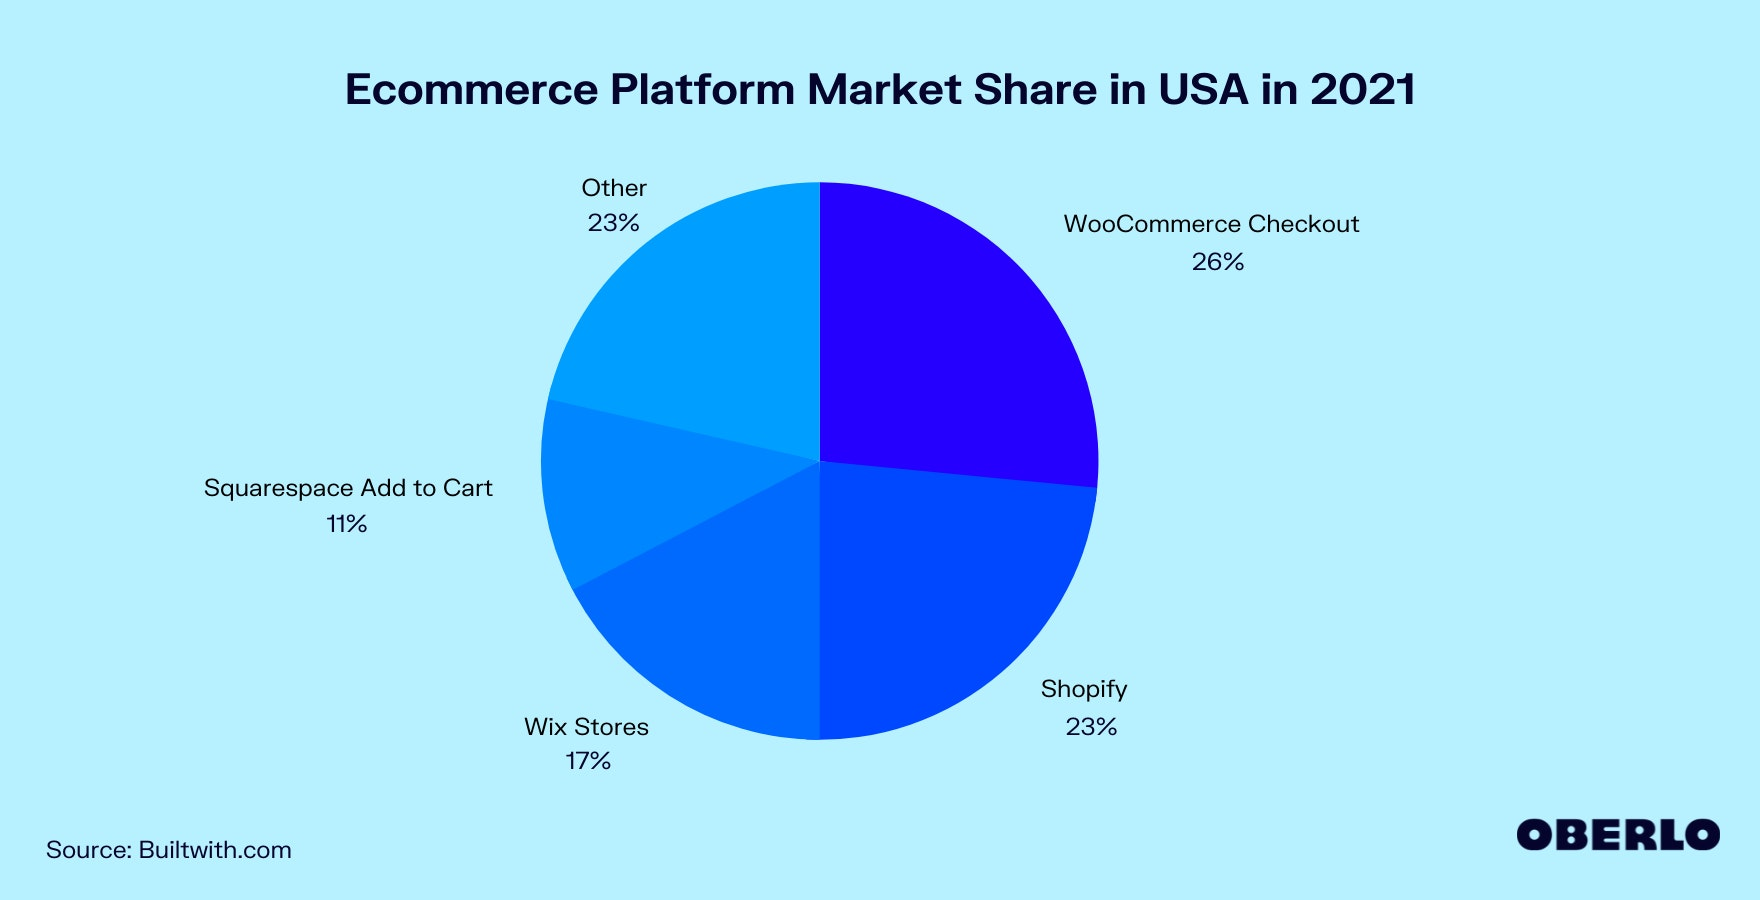 Graph of Ecommerce Platform Market Share in USA in 2021